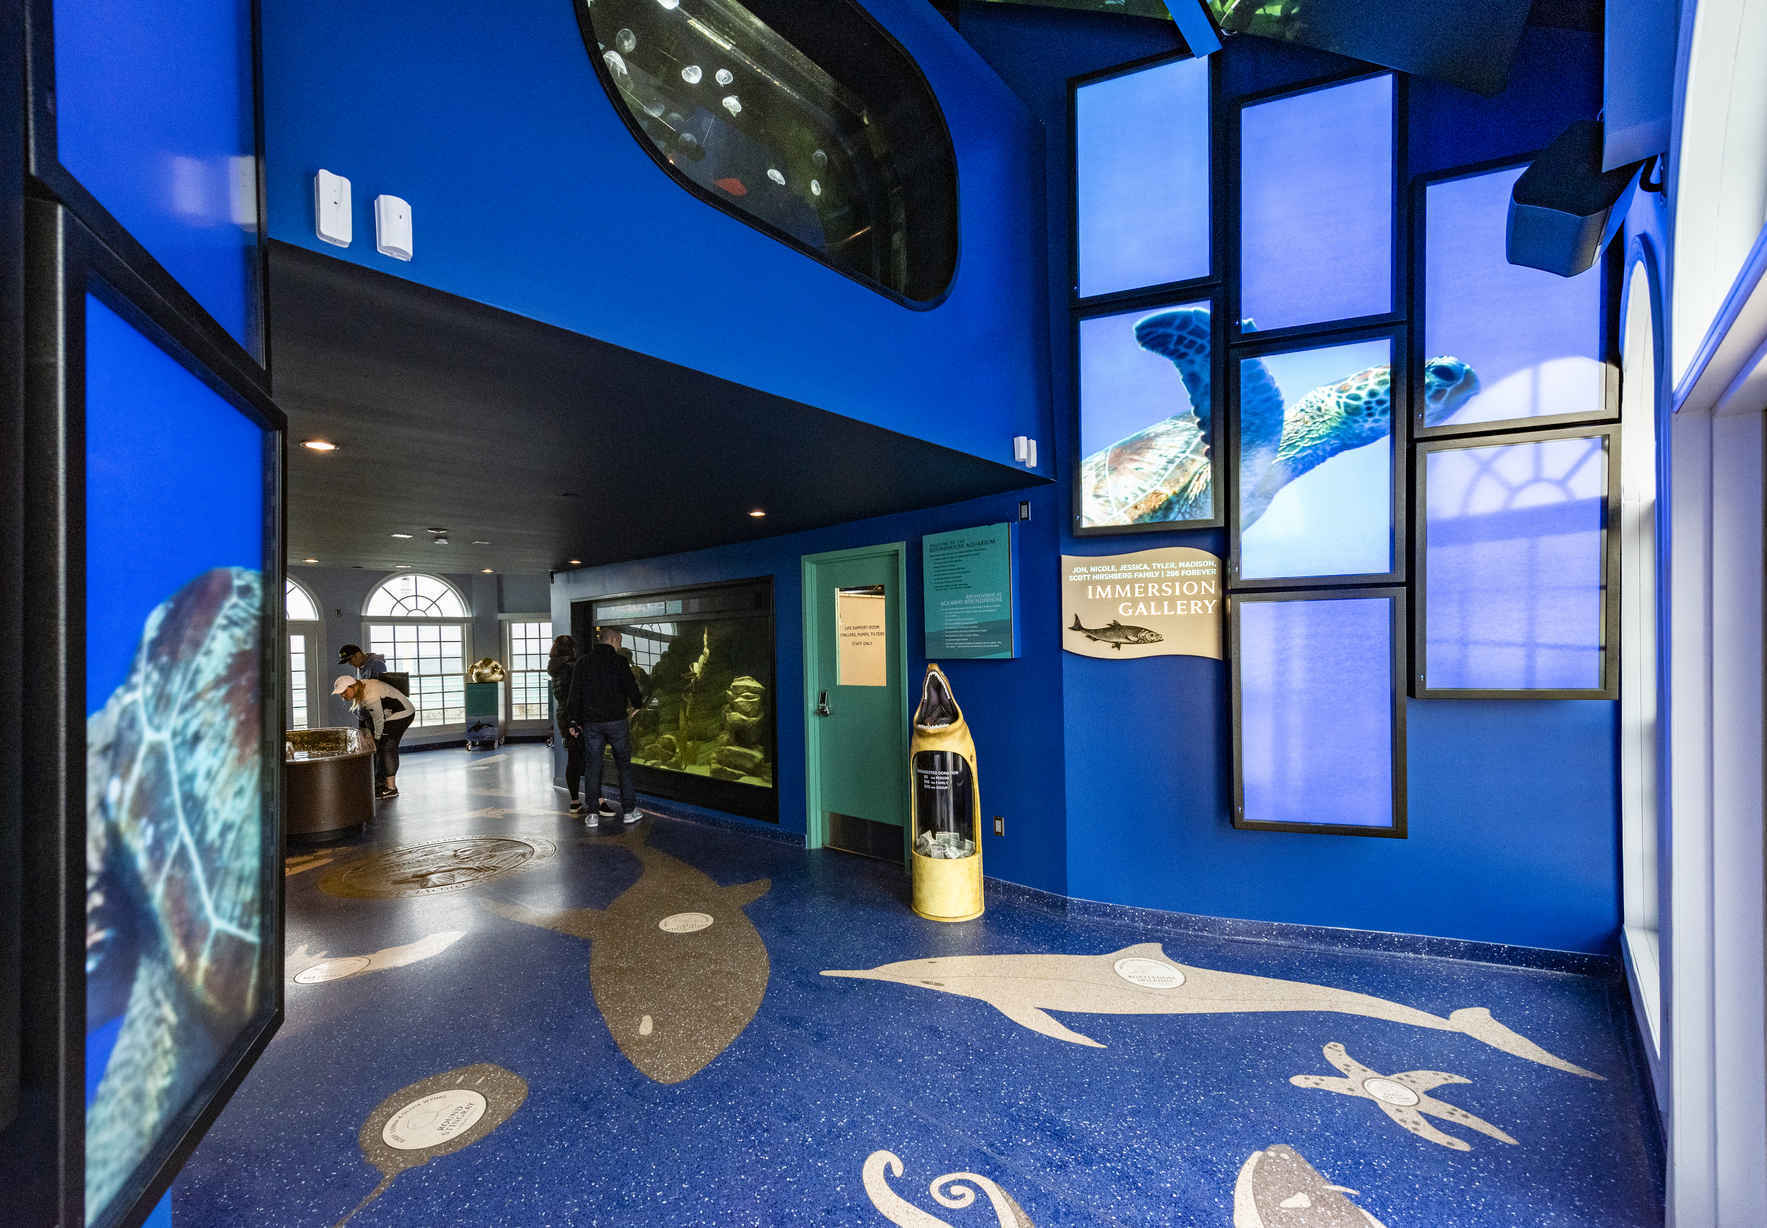 July 6 - Reserve your free entry to the Roundhouse Aquarium image